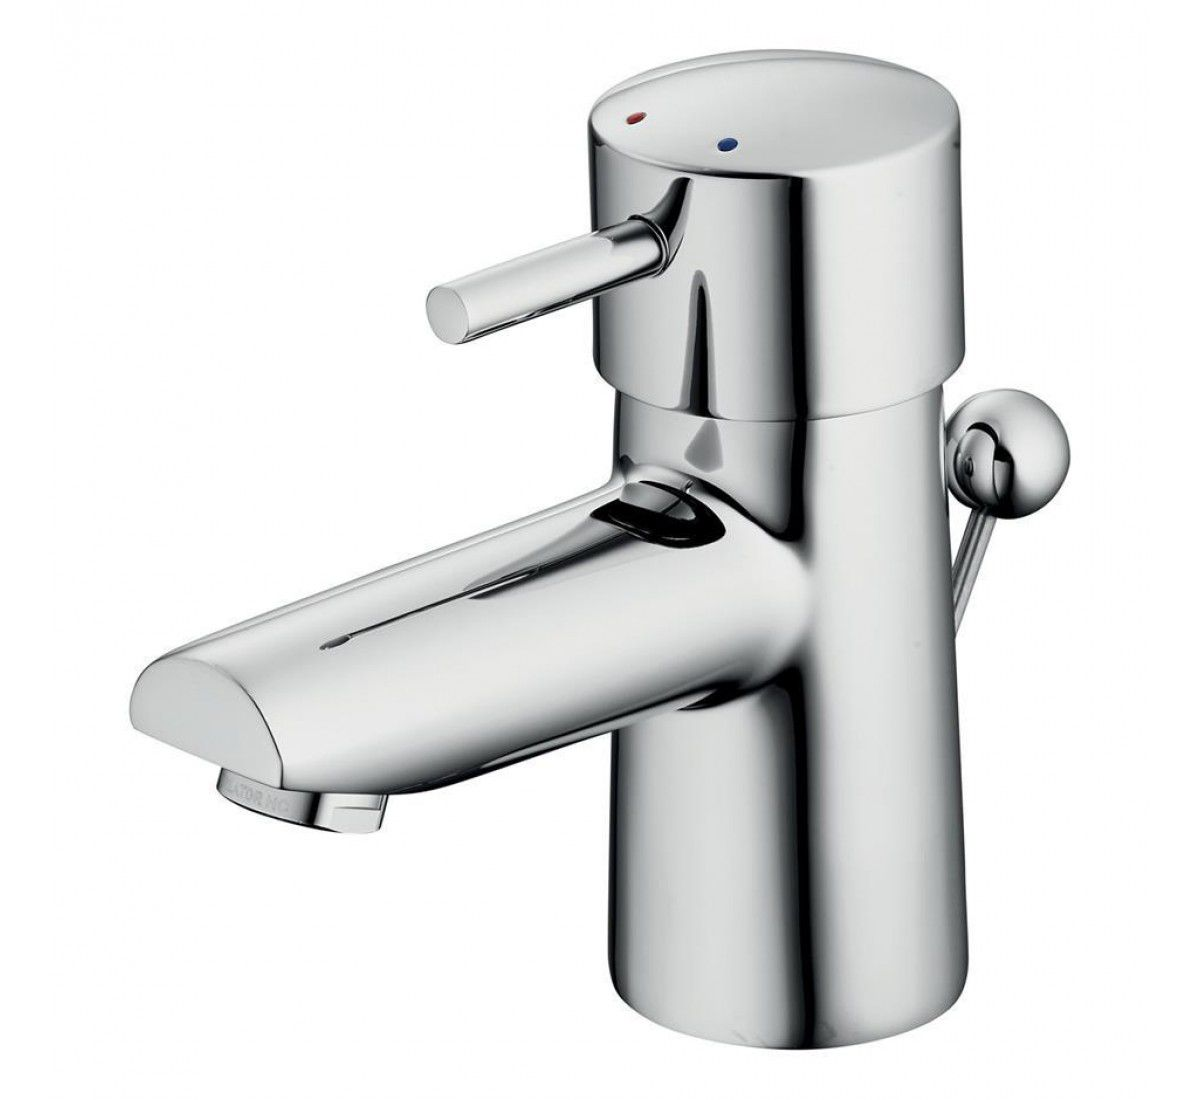 ideal standard cone basin mixer tap uk bathrooms. Black Bedroom Furniture Sets. Home Design Ideas